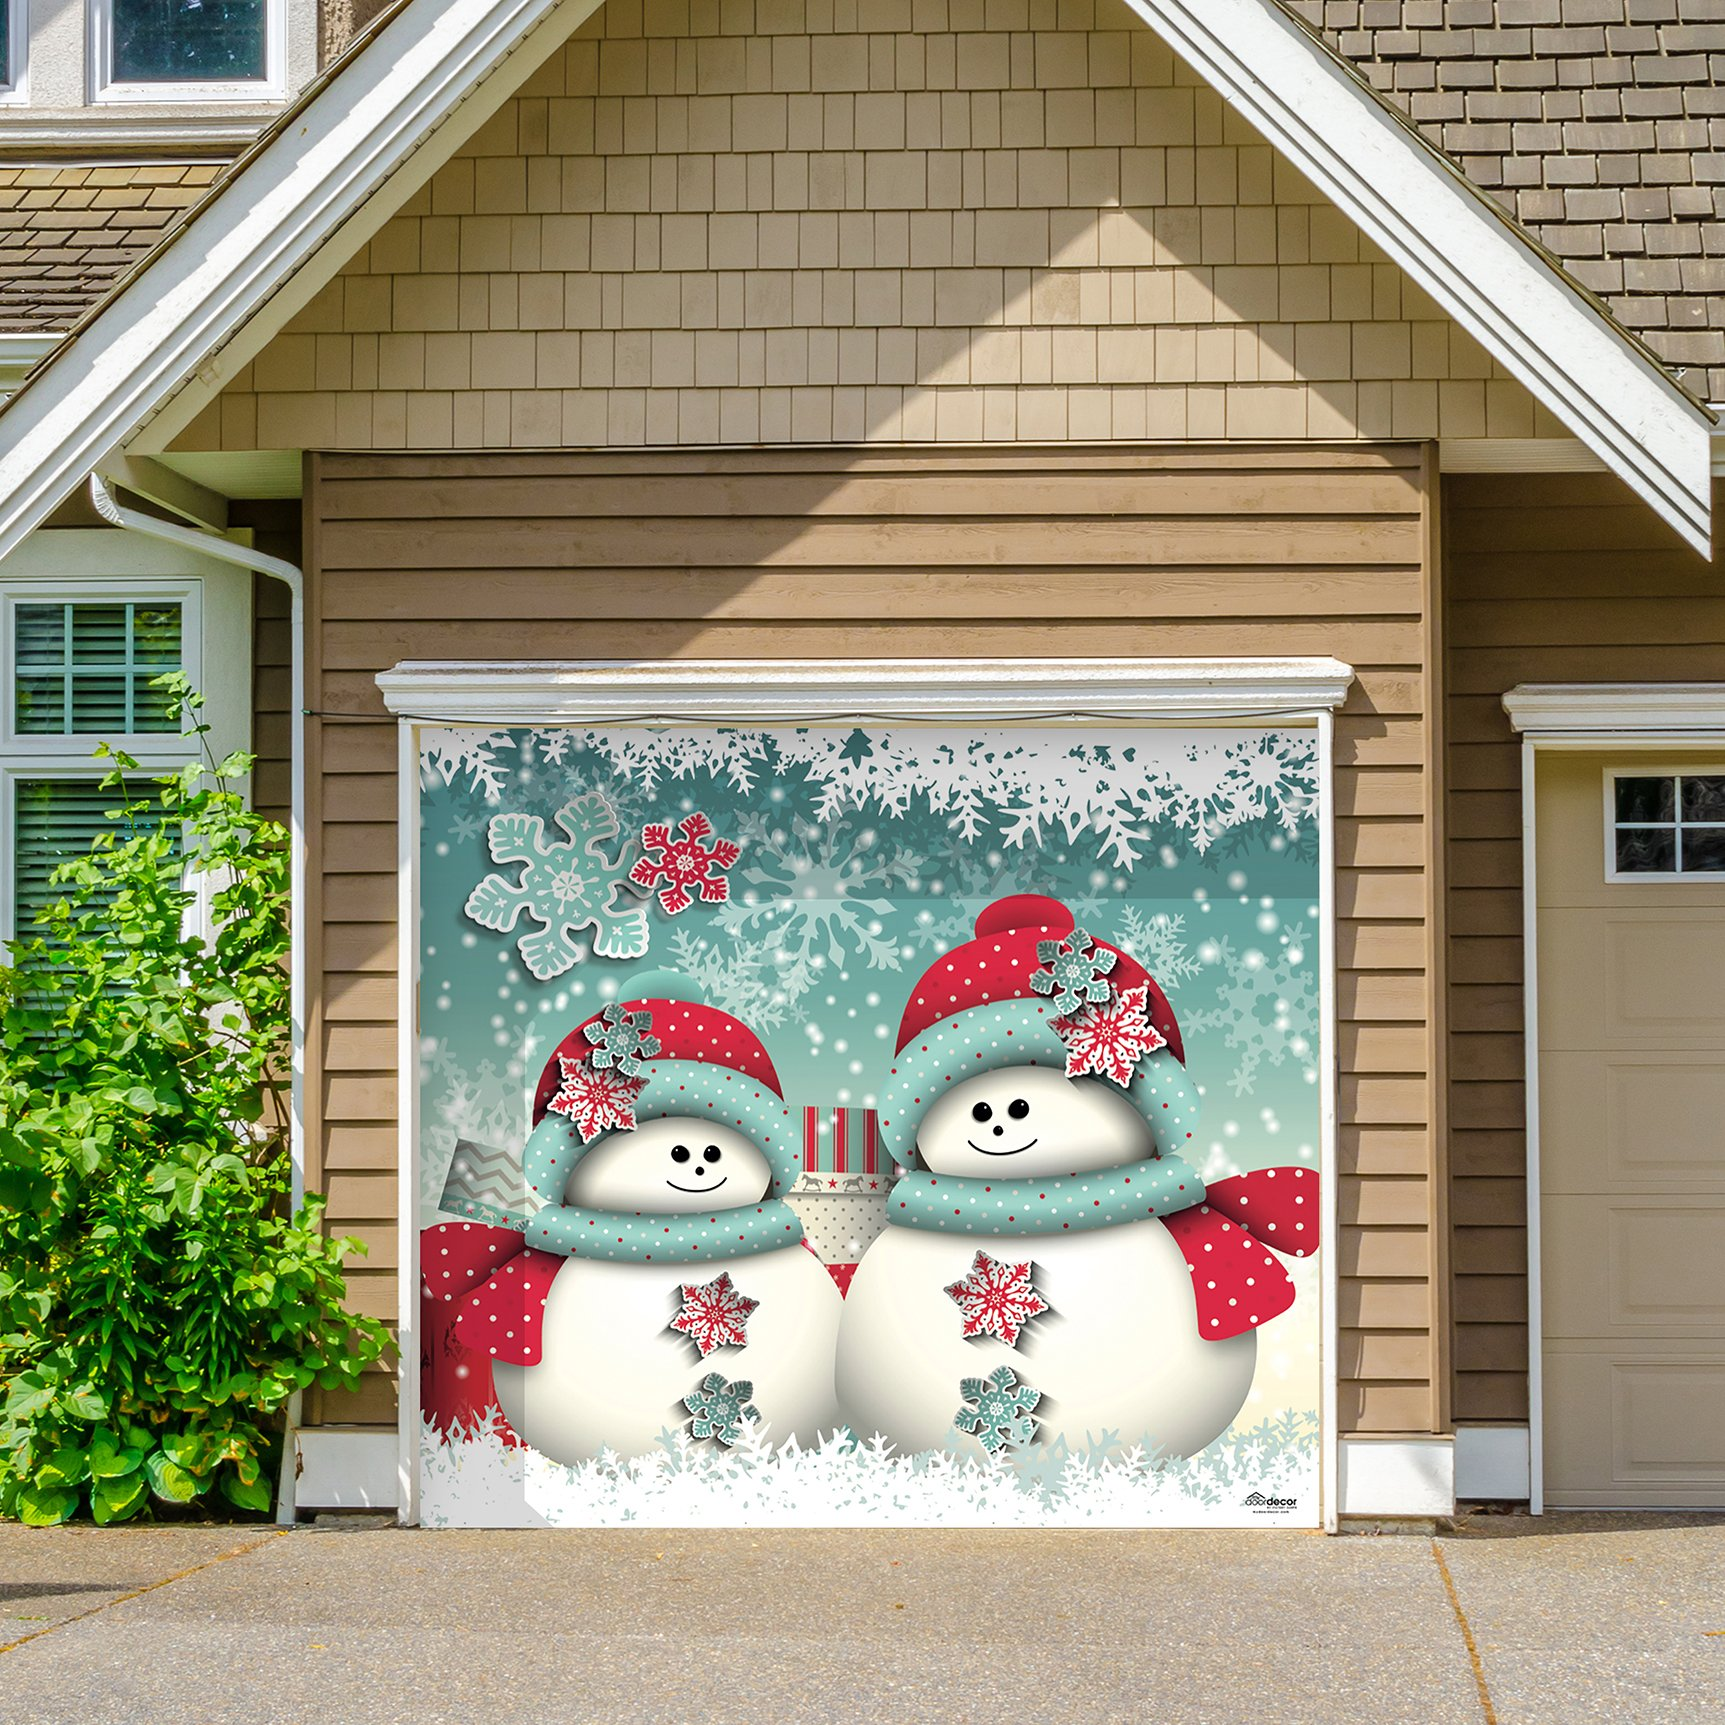 Outdoor Christmas Holiday Garage Door Banner Cover Mural Décoration - Christmas Snowmen and Gifts Holiday Garage Door Banner Décor Sign 8'x9'